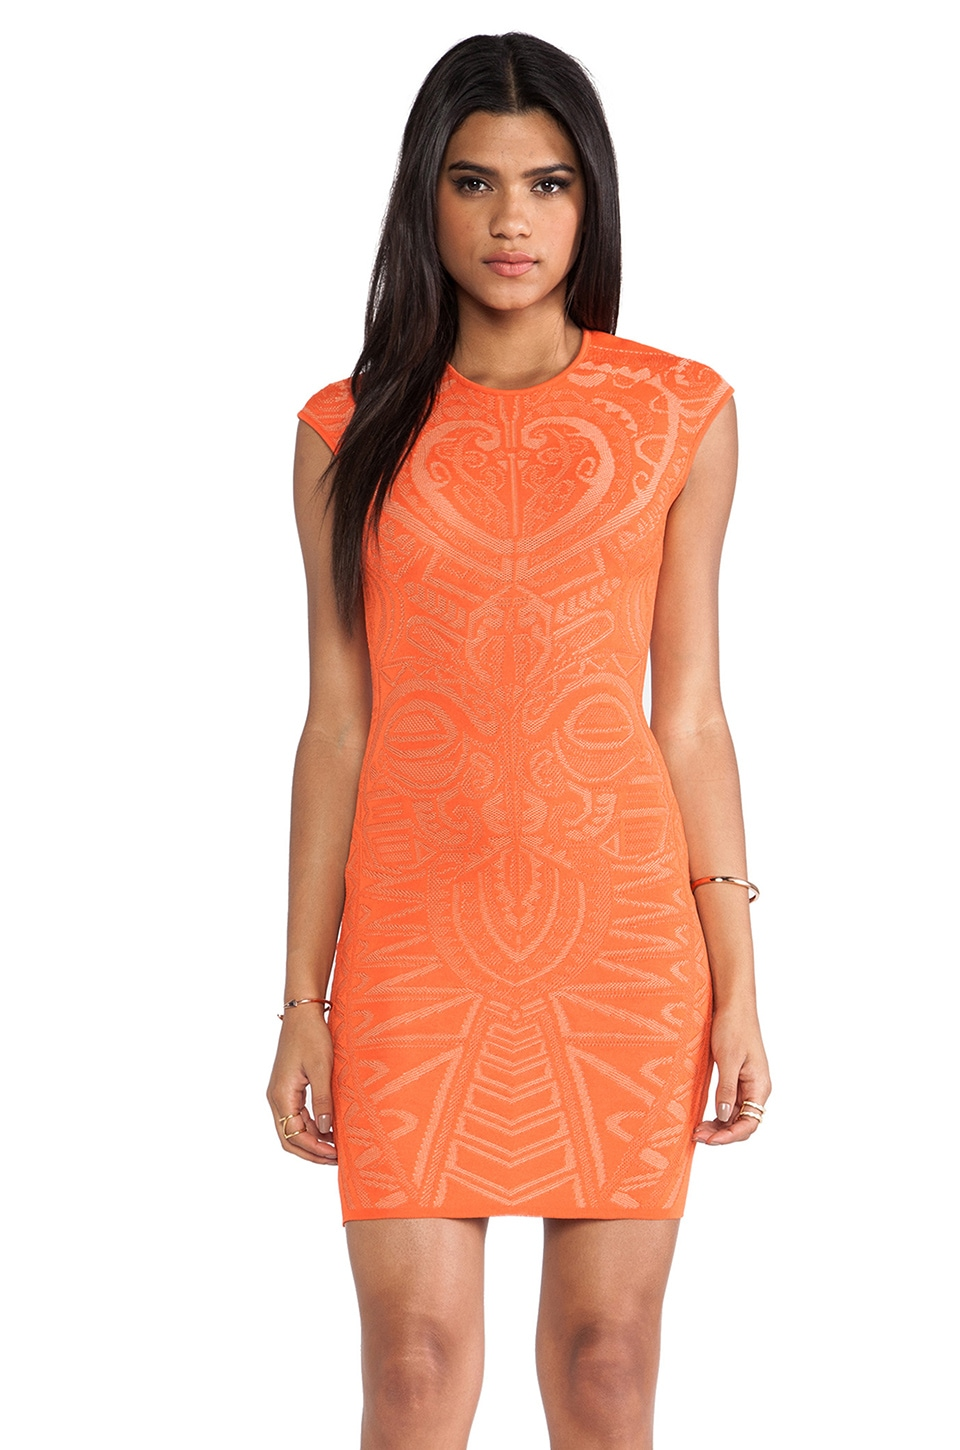 RVN Mayan Lace Jacq Dress in Tangerine & Nude